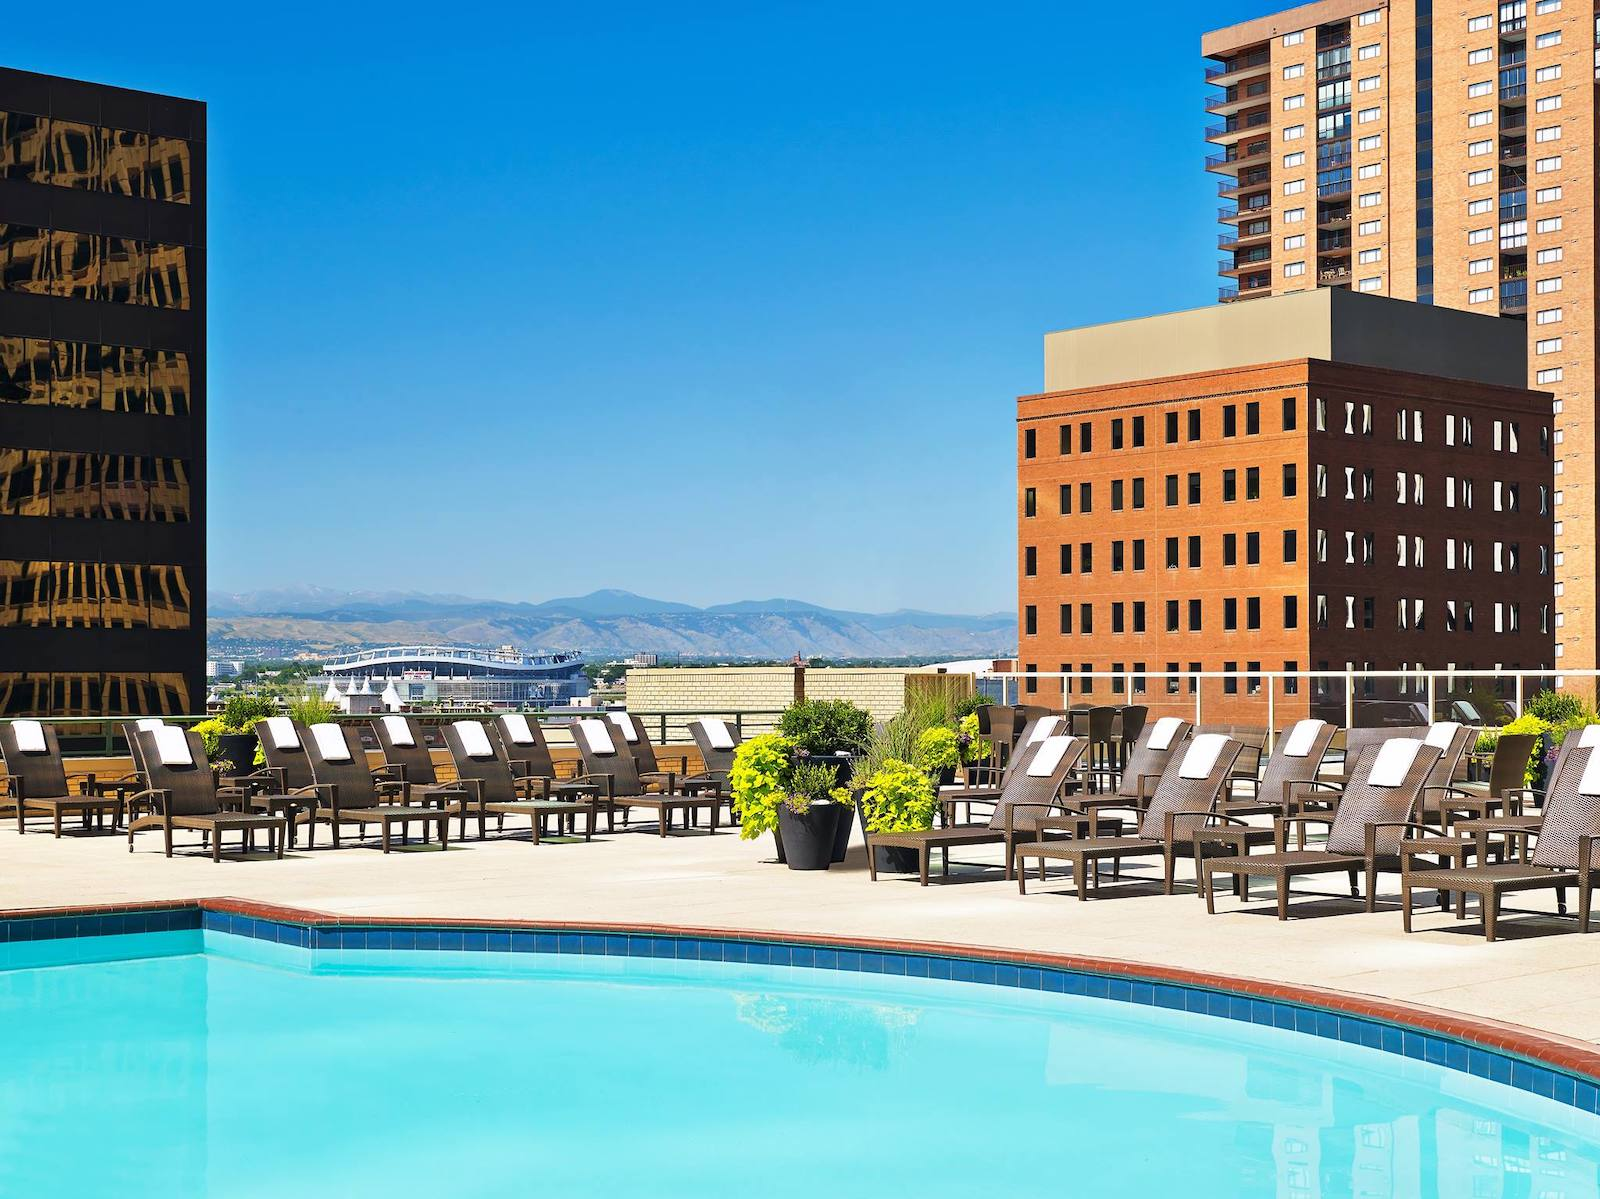 Swimming pool at Westin Denver Downtown, CO